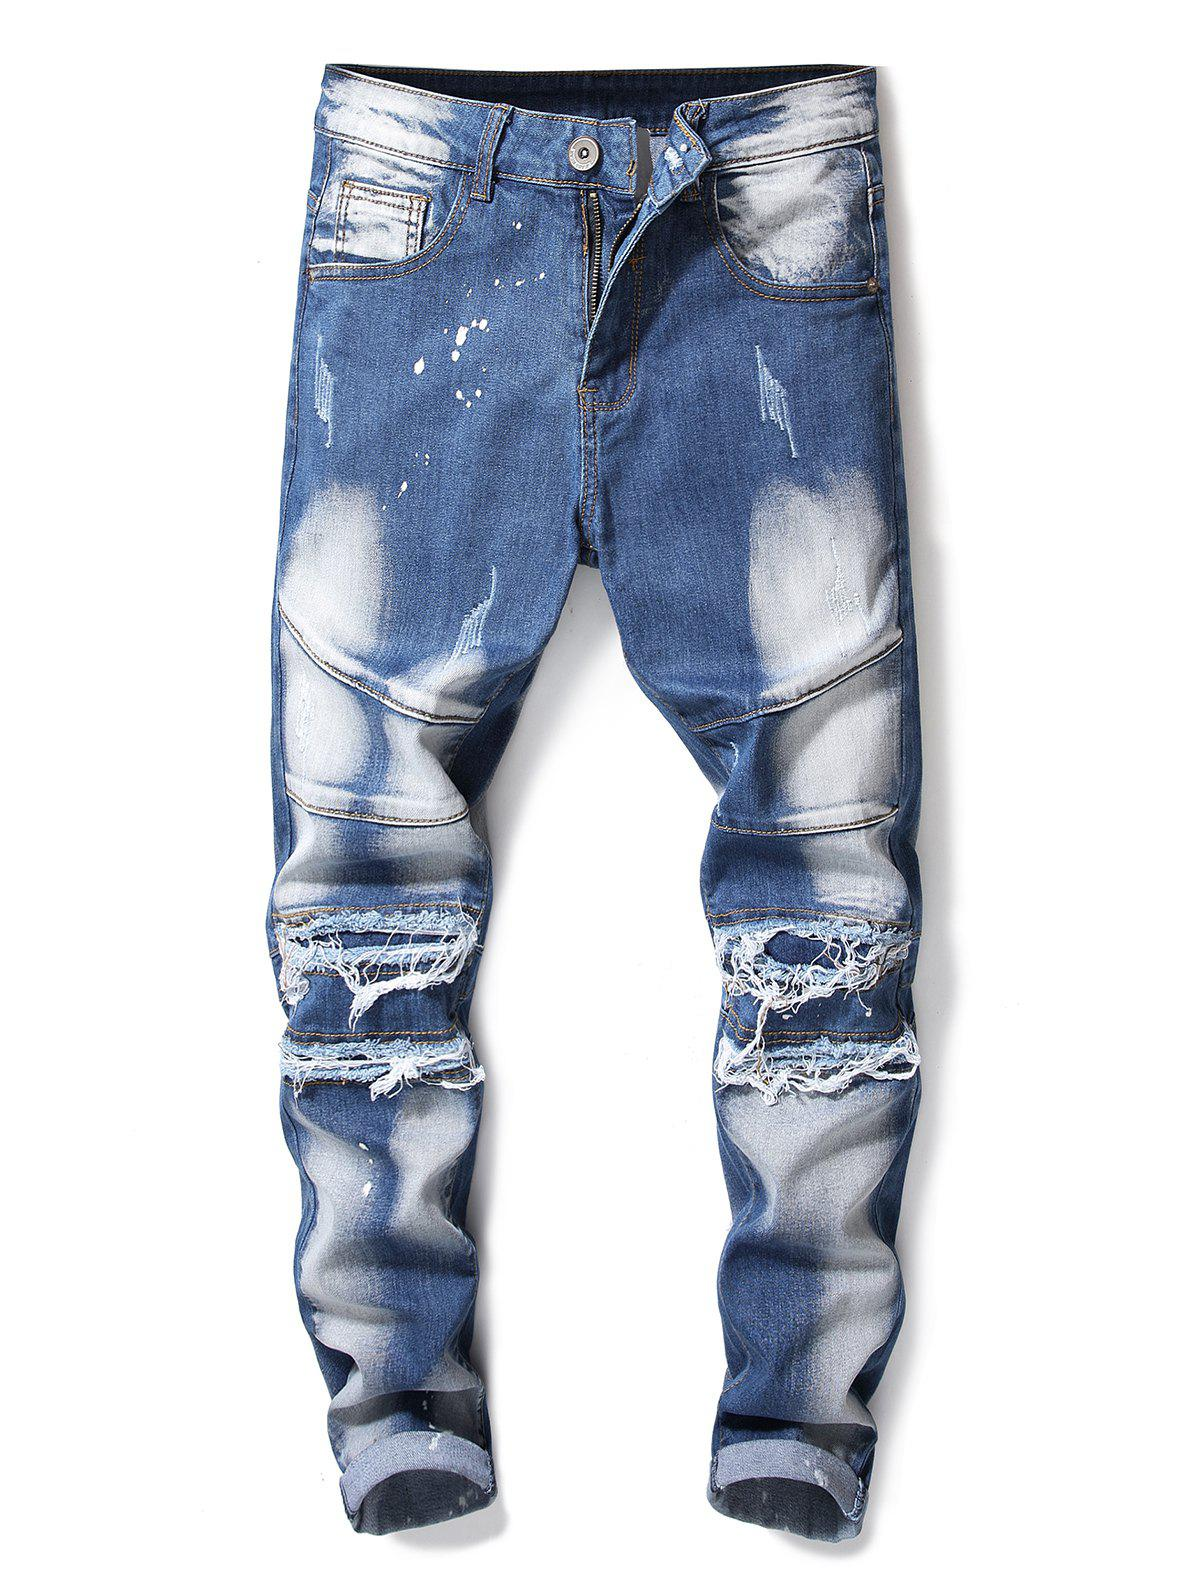 Chic Patchwork Tapered Vintage Destroyed Jeans